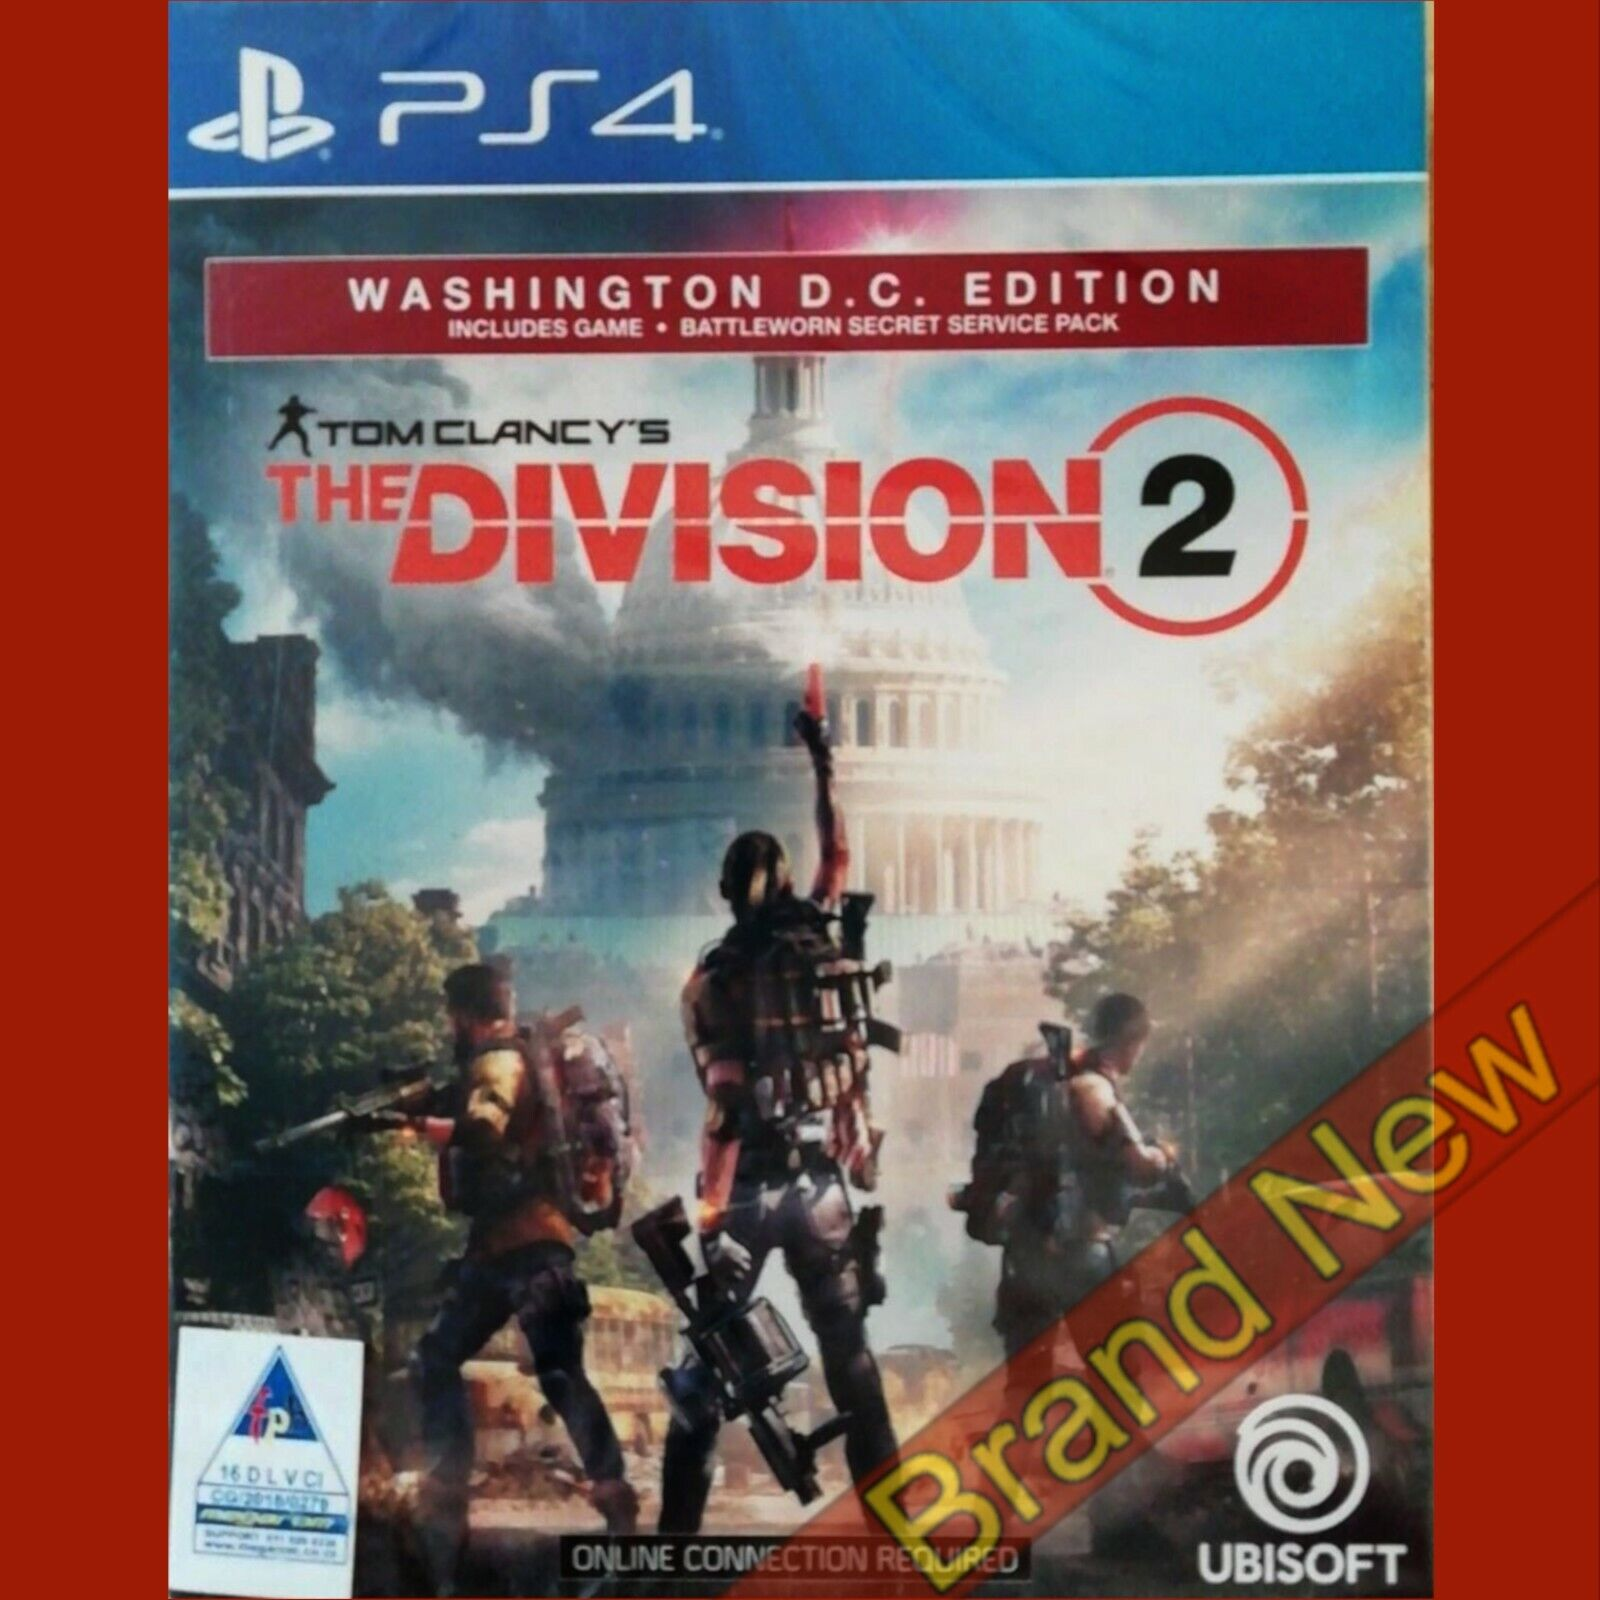 THE DIVISION 2 WASHINGTON D.C. EDITION - PlayStation 4 PS4 ~ Brand New & Sealed